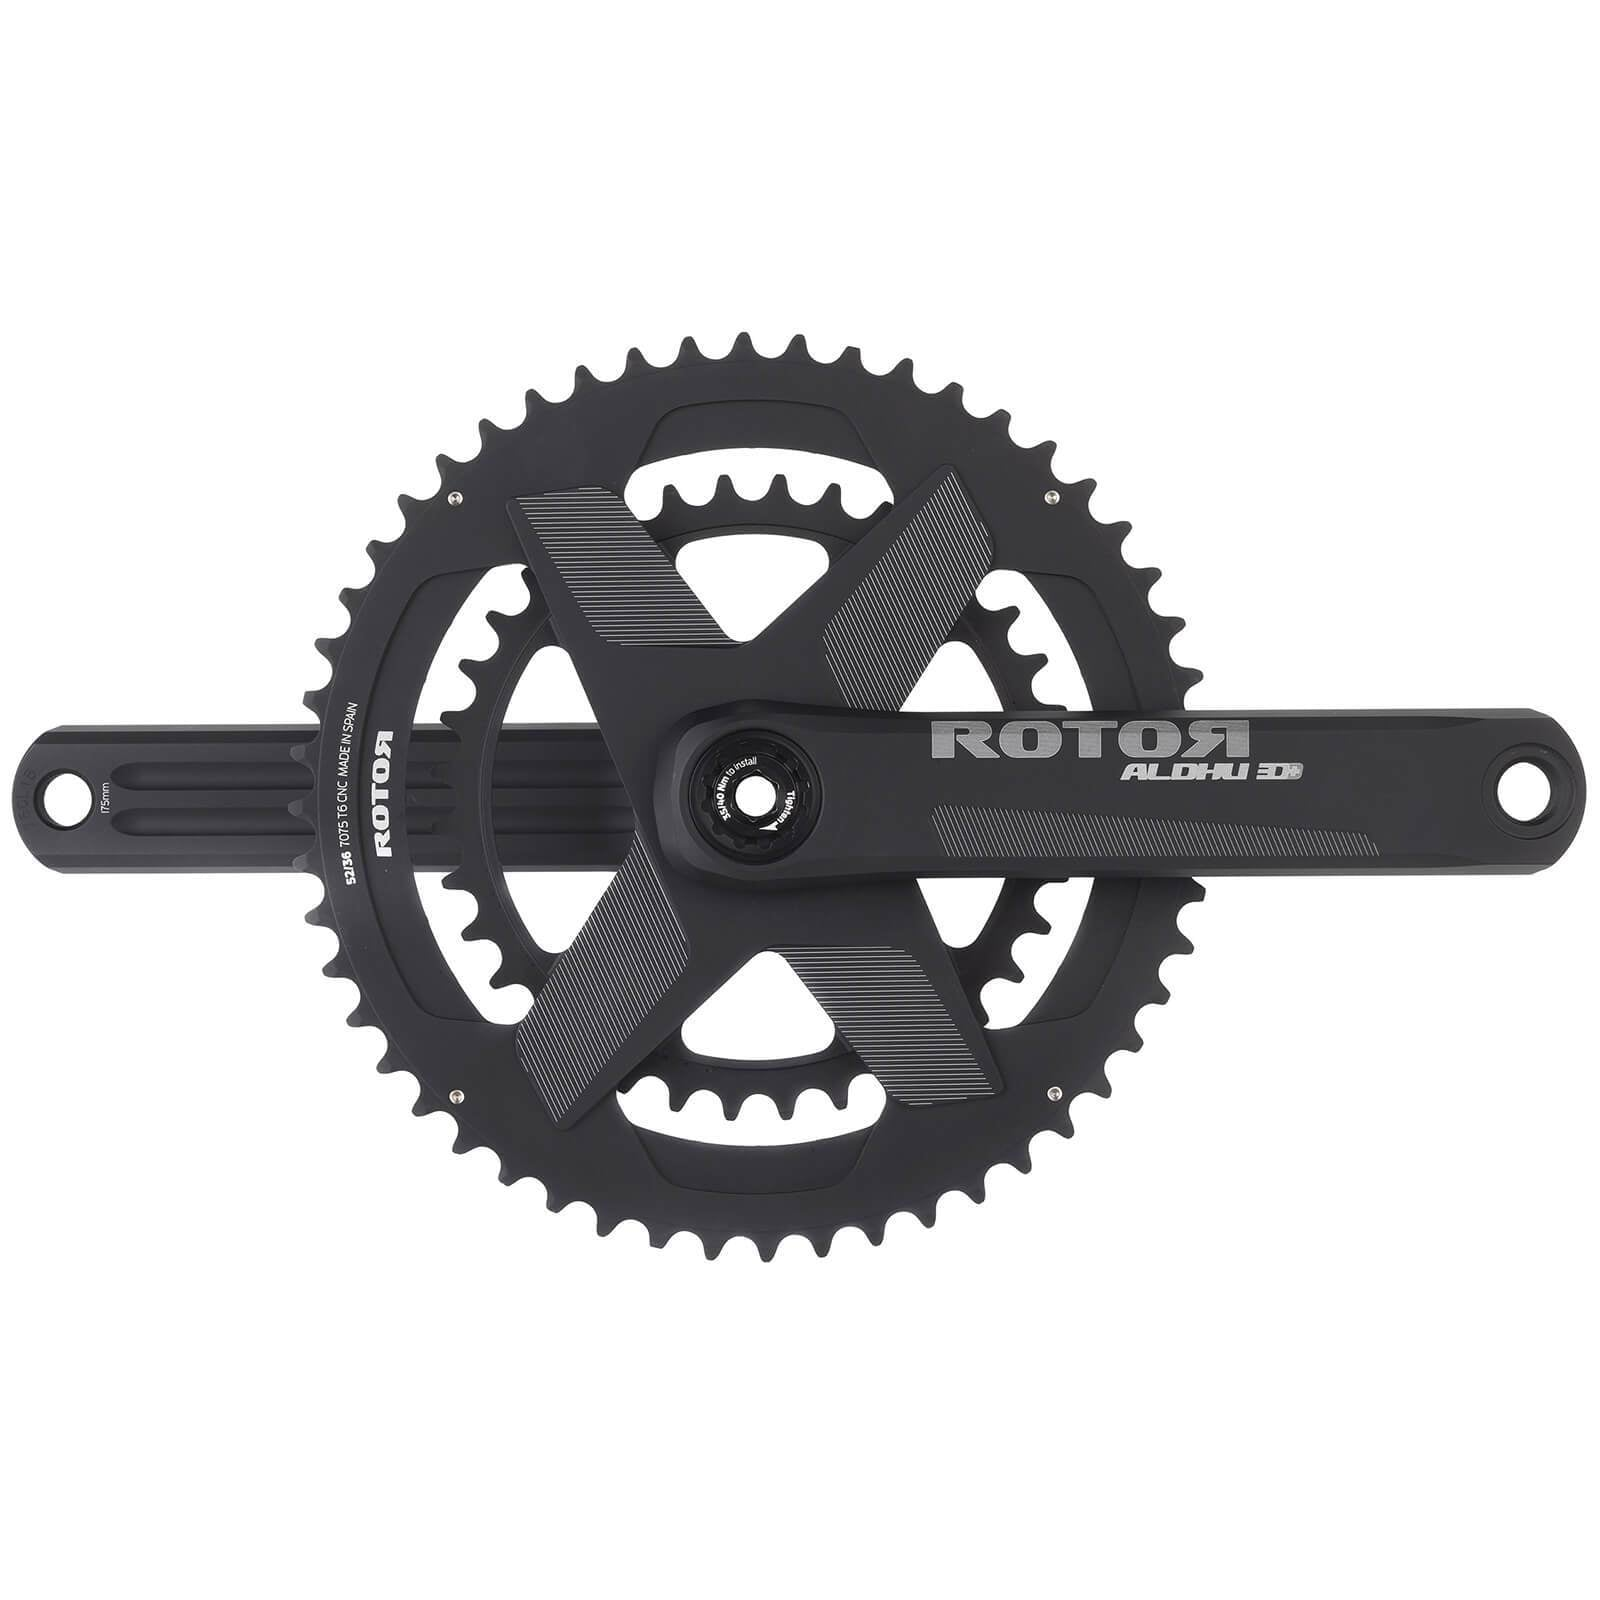 Rotor Components > Brakes & Chainsets ROTOR ALDHU DIRECT MOUNT ROUND CHAINSET